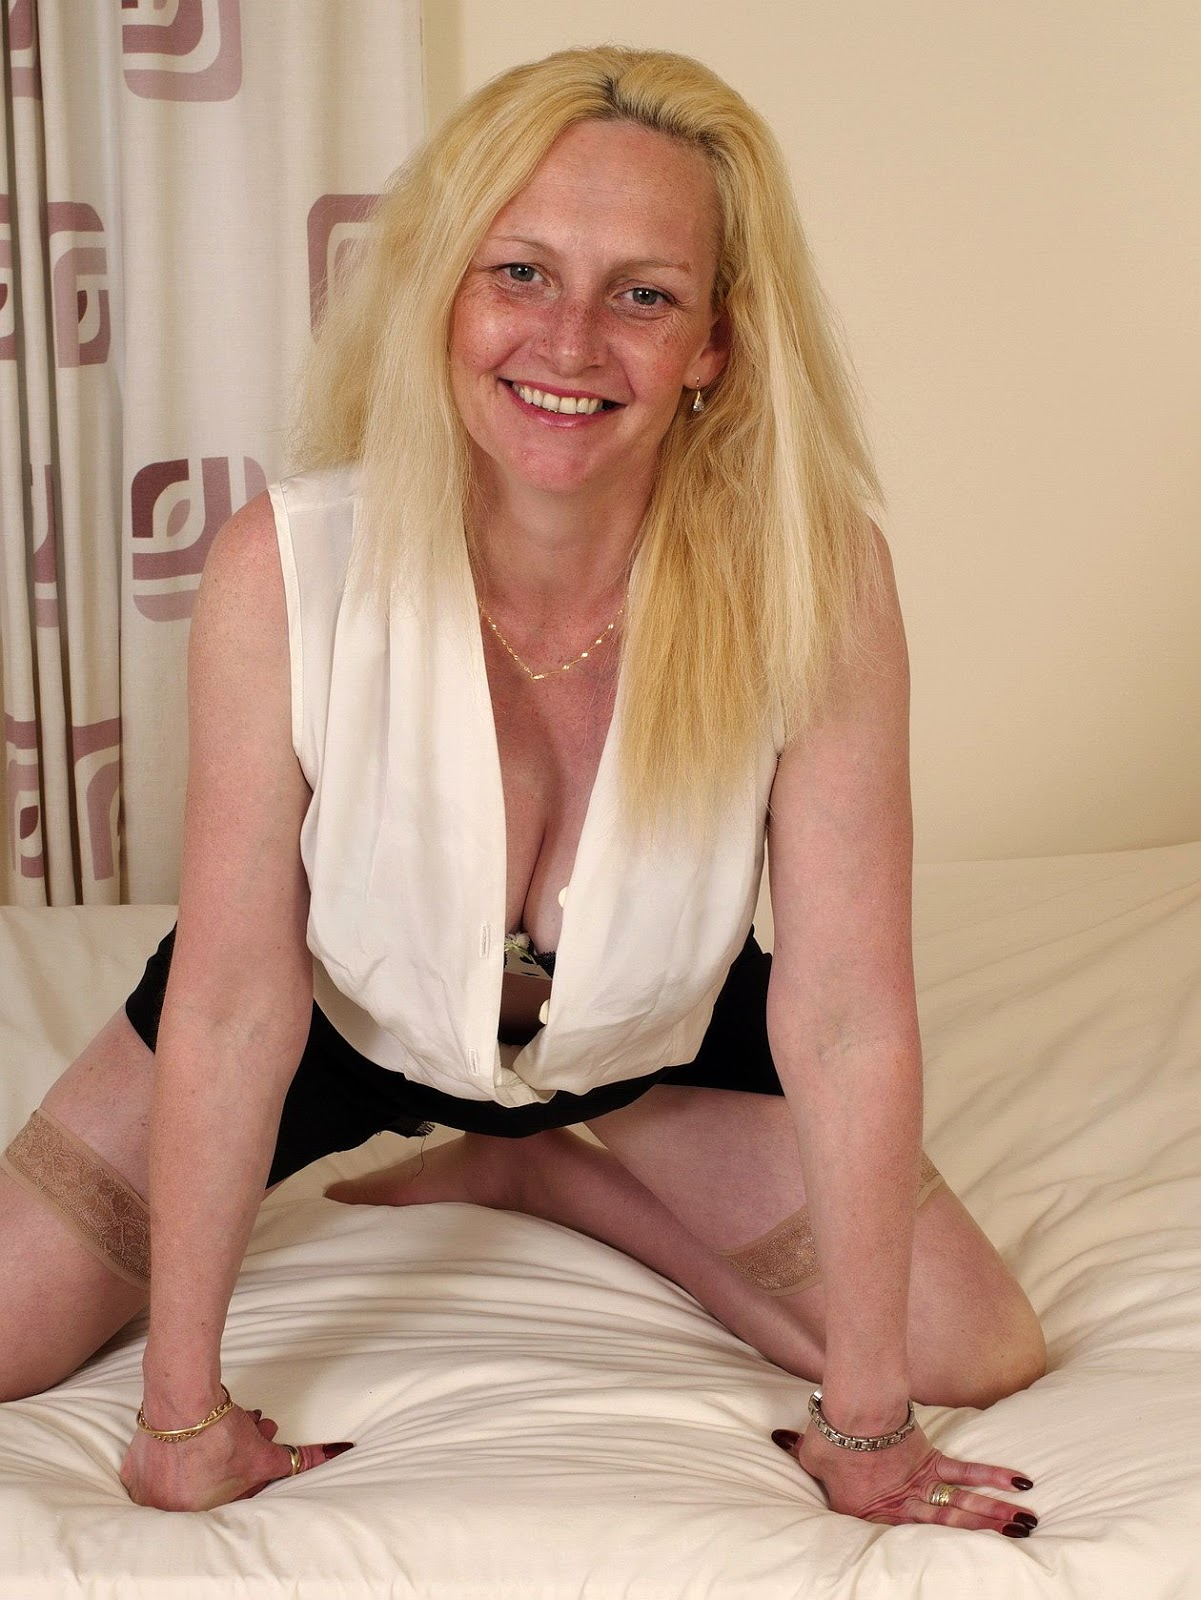 45 To 50 Divorced Fetish Woman Seeking Man